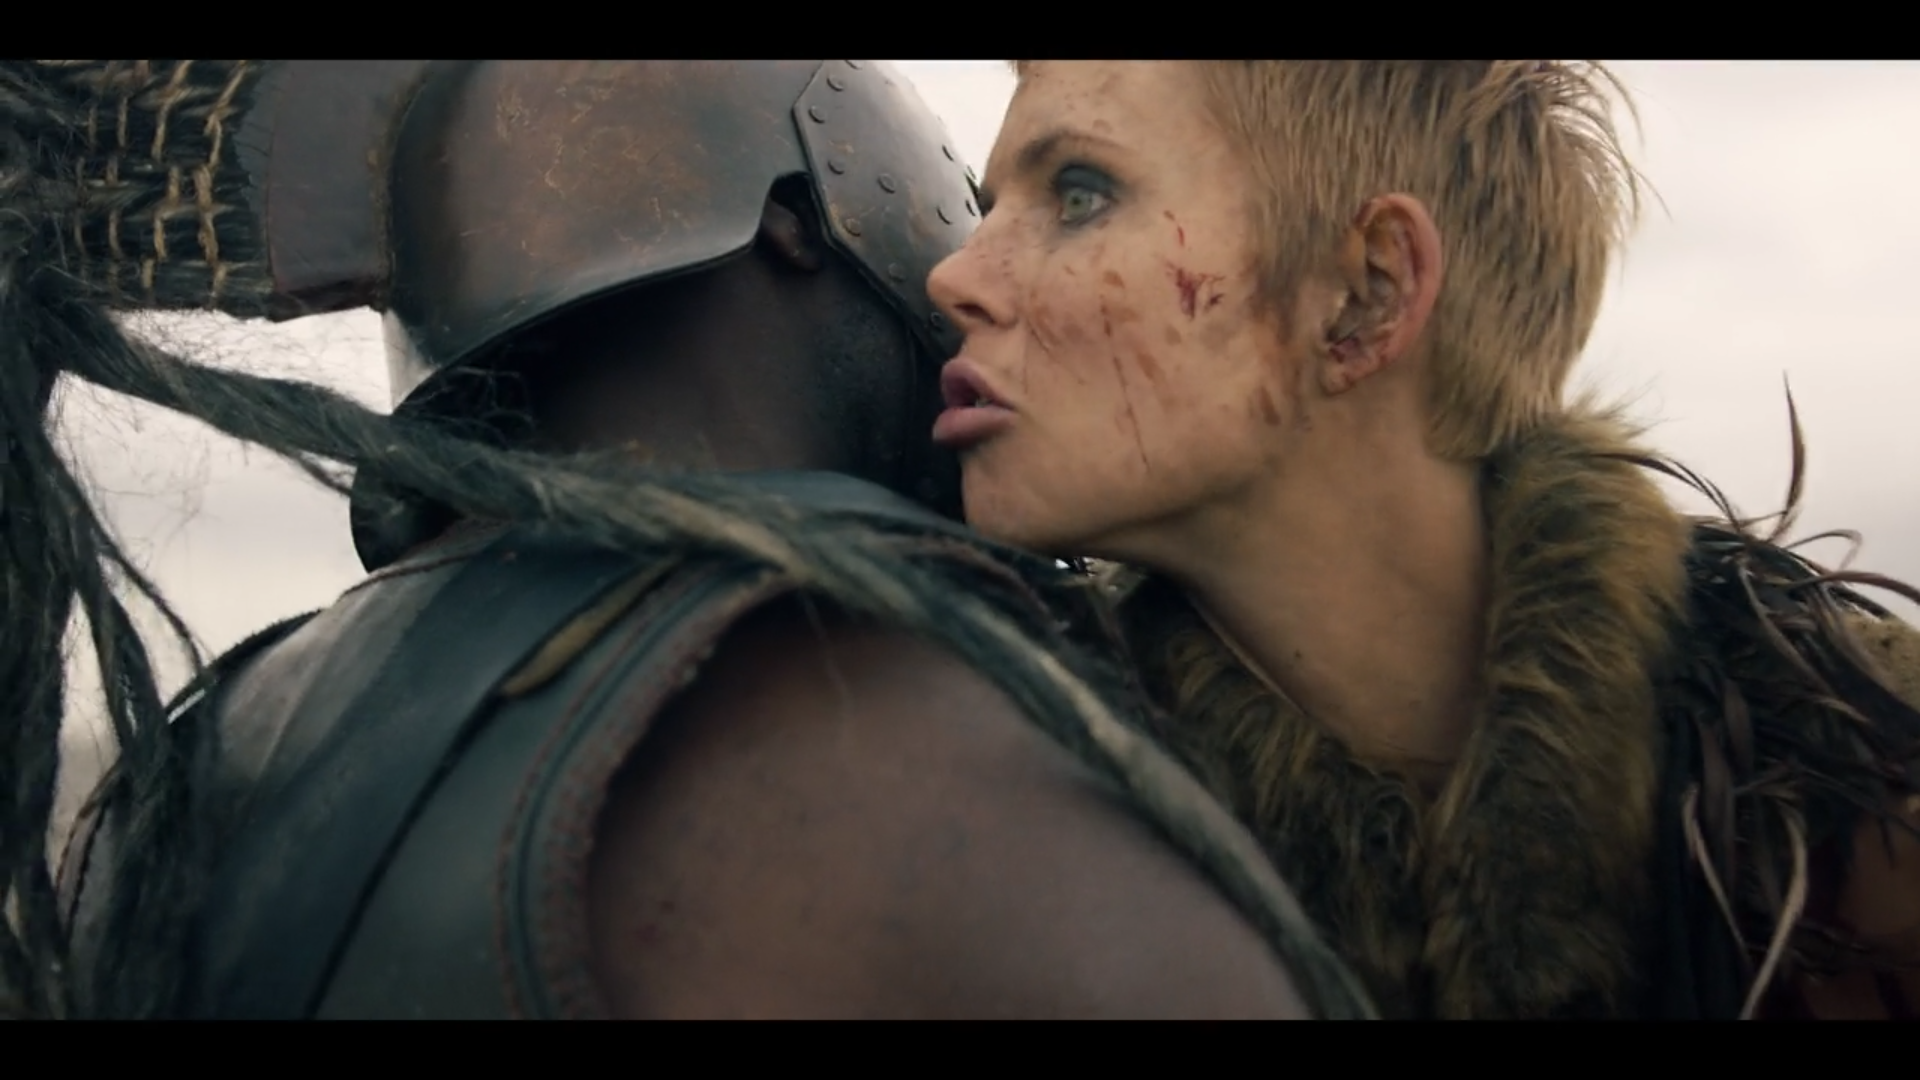 """Figure 4: A blood-spattered Penthesilea whispers to Achilles after he's delivered the killing blow to her in the TROY: FALL OF A CITY episode """"Twelve Days"""" (1.7; 2019). Credit: BBC/Netflix."""